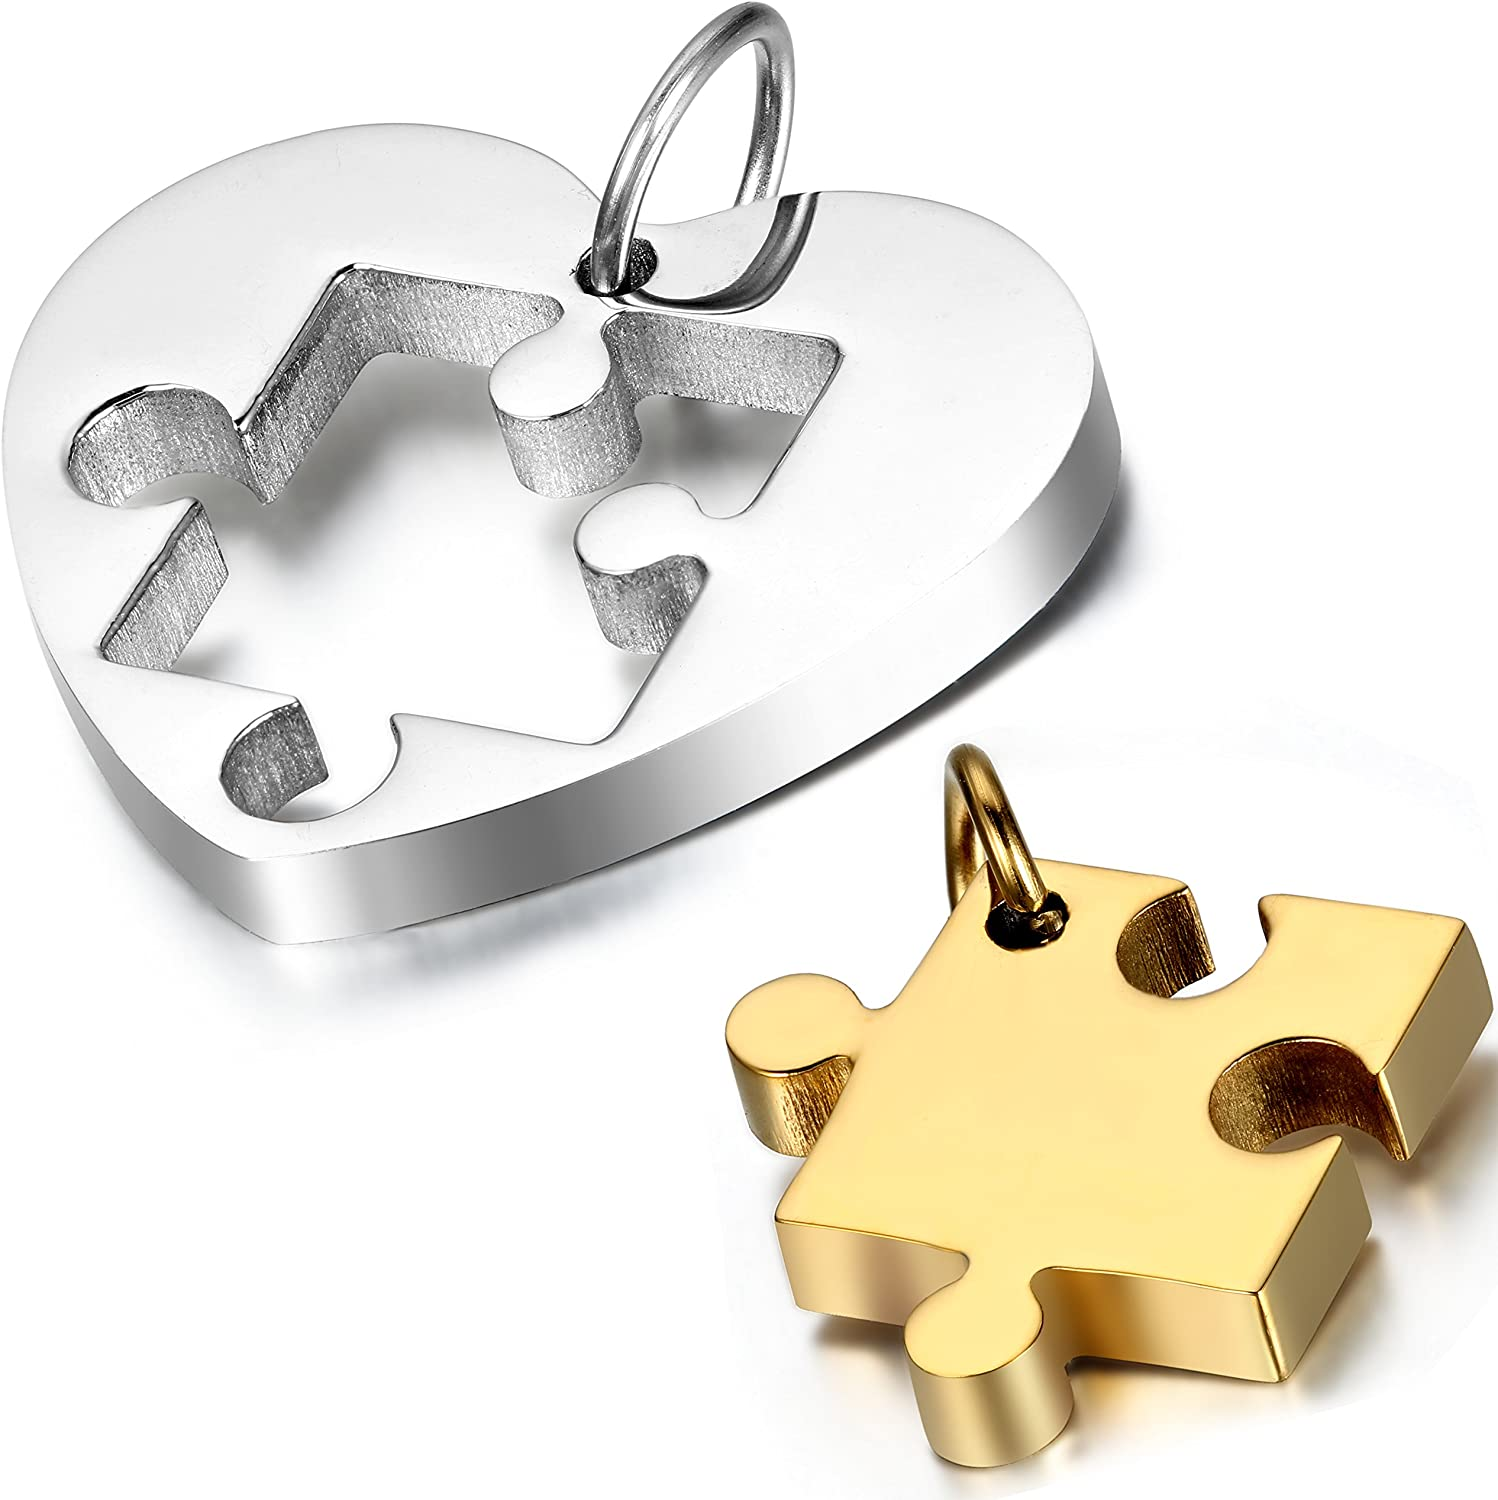 OIDEA 2PCS Stainless Steel Couples Love Heart Puzzle Pendant Necklace for Valentines Day,Chain Included, with Gift Bag Package,Black